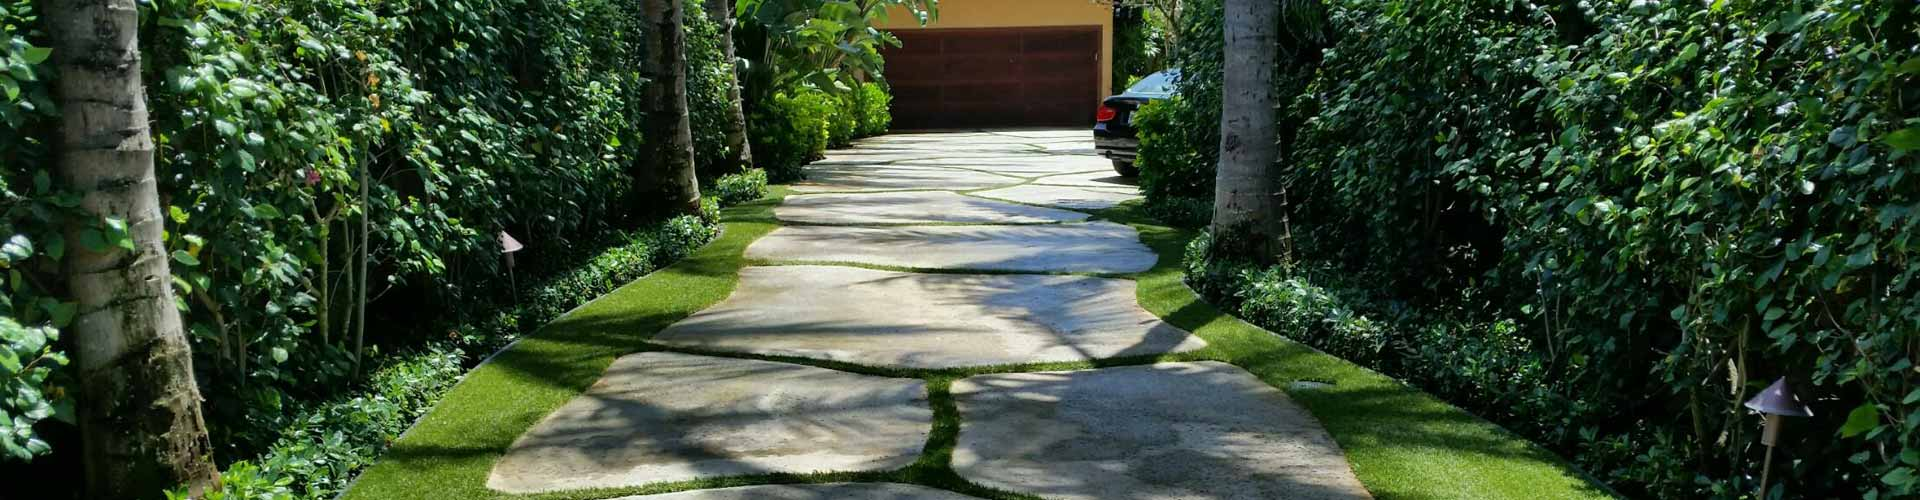 Residential driveway grass installation in Hawaii